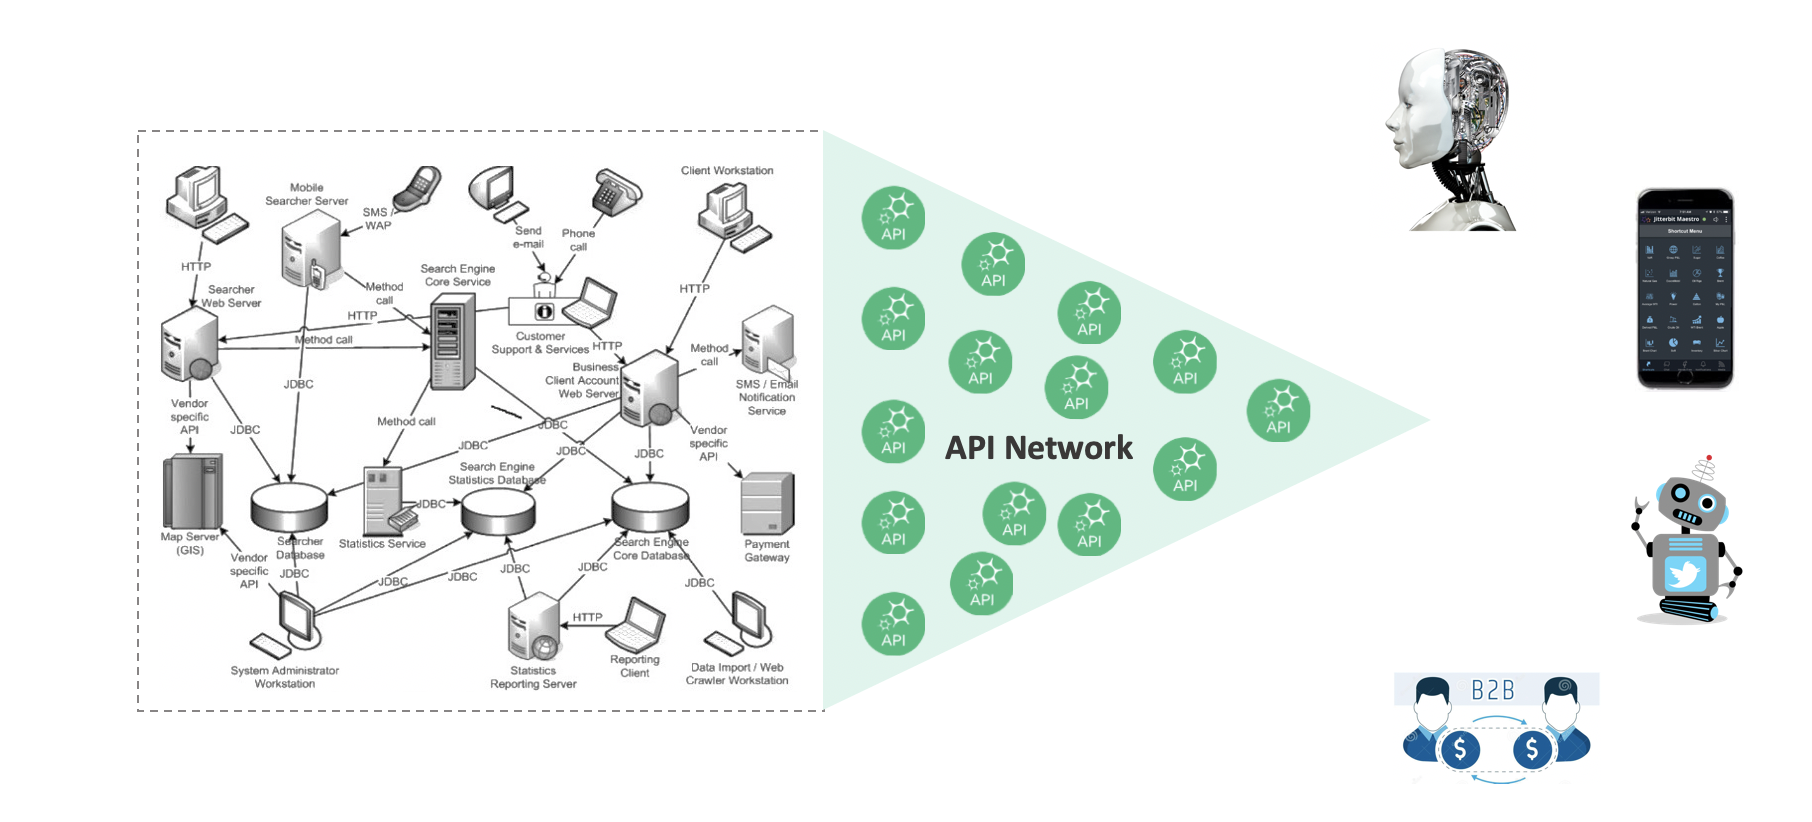 API Integration Platform simplifying the communication and connectivity between disparate devices, systems and apps.